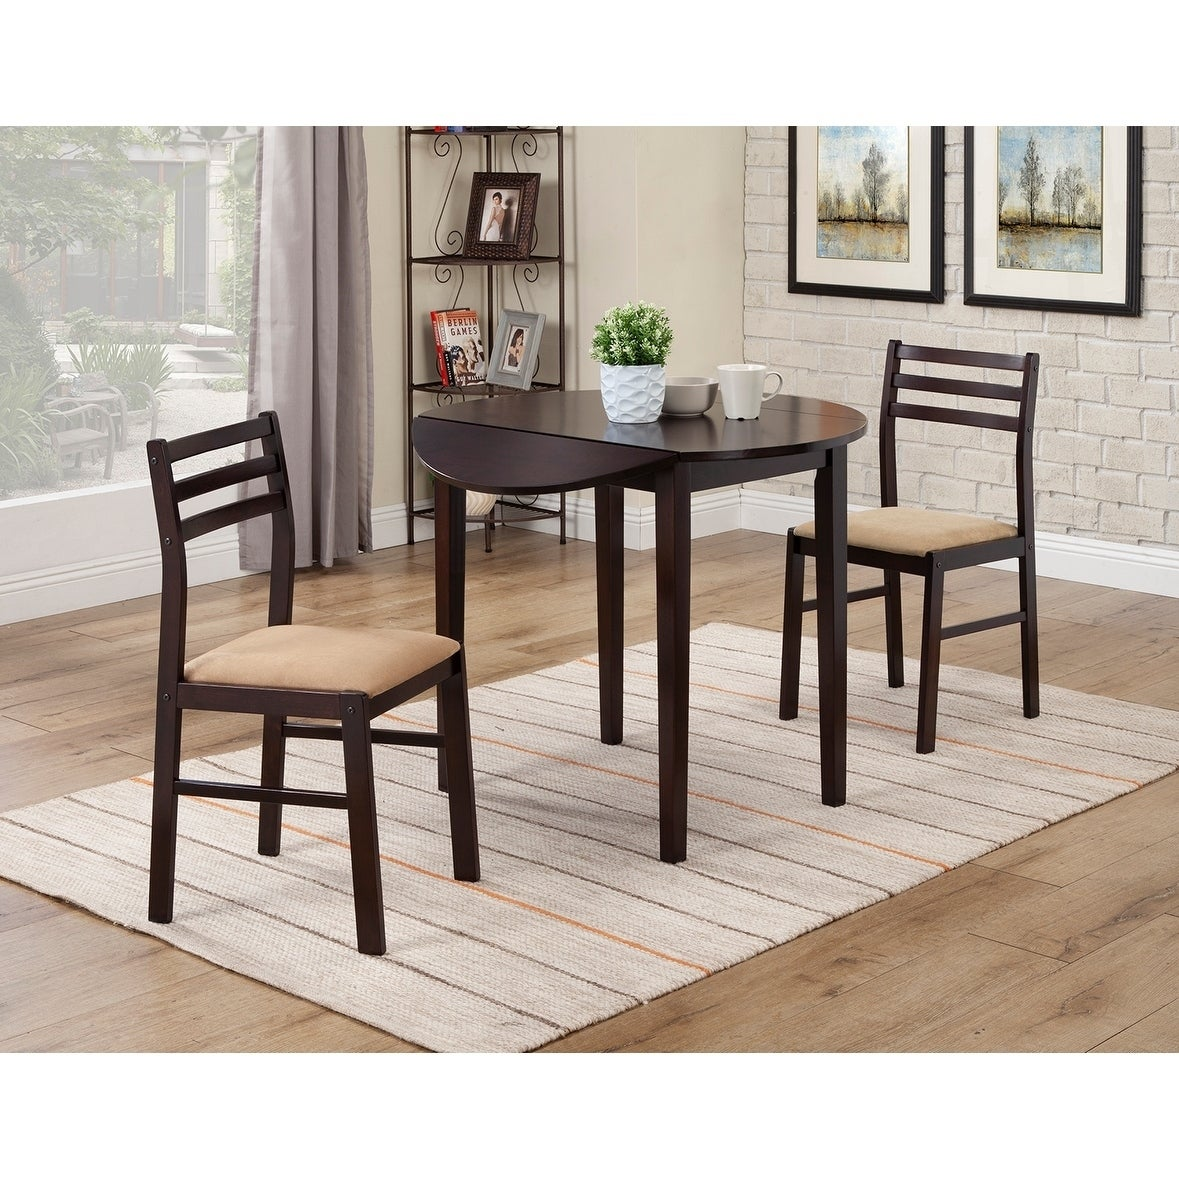 Coaster Company Cappuccino 3-piece Dining Set (BREAKFAST TABLE)